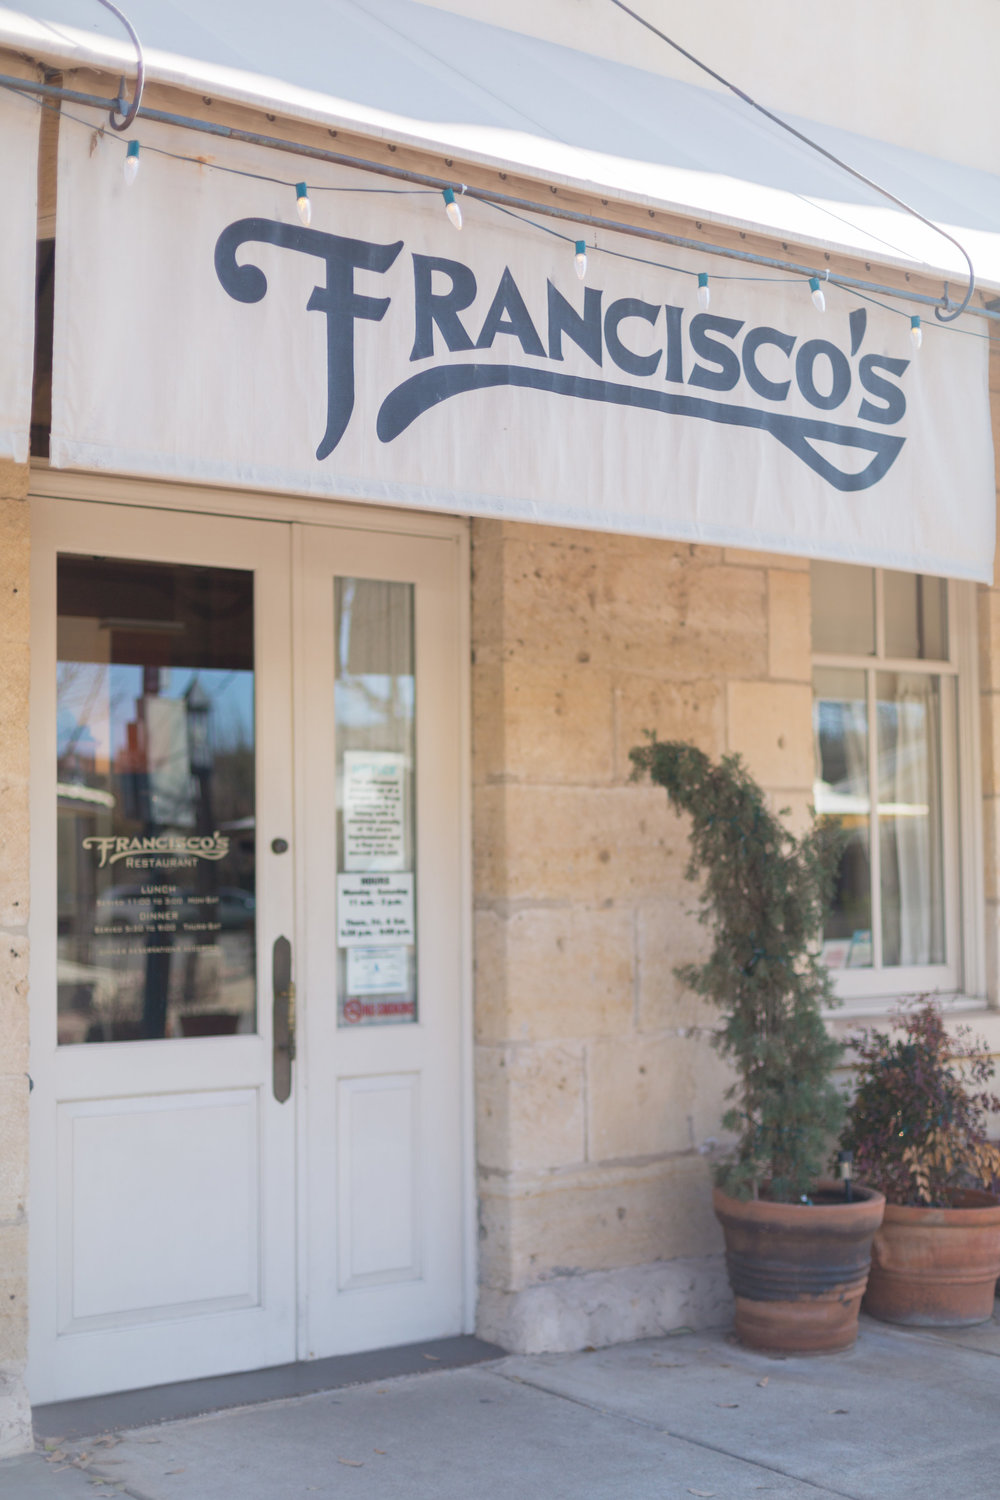 Francisco's Restaurant